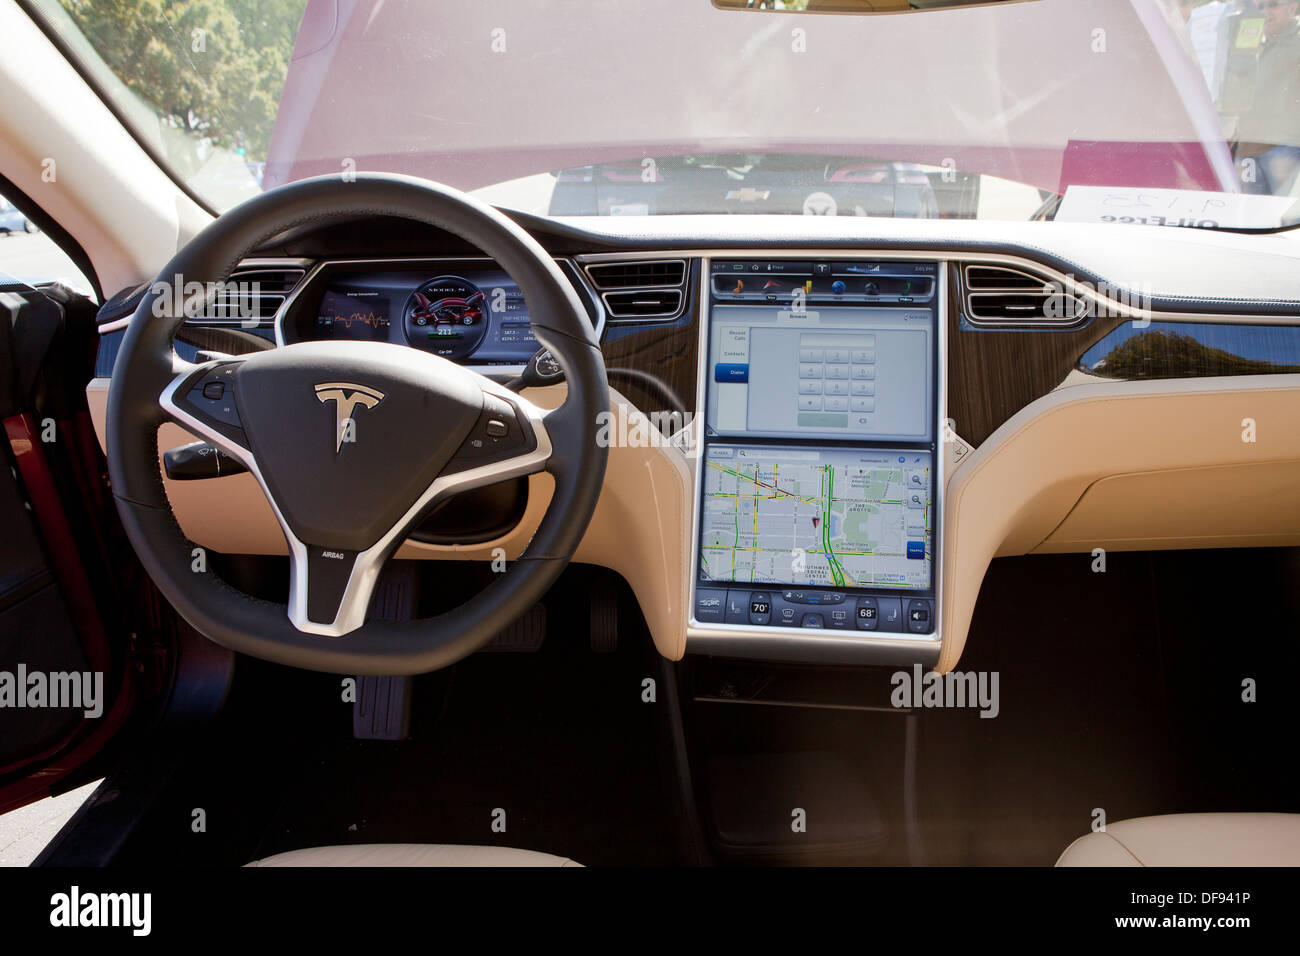 tesla model s electric car interior stock photo royalty free image 61051698 alamy. Black Bedroom Furniture Sets. Home Design Ideas